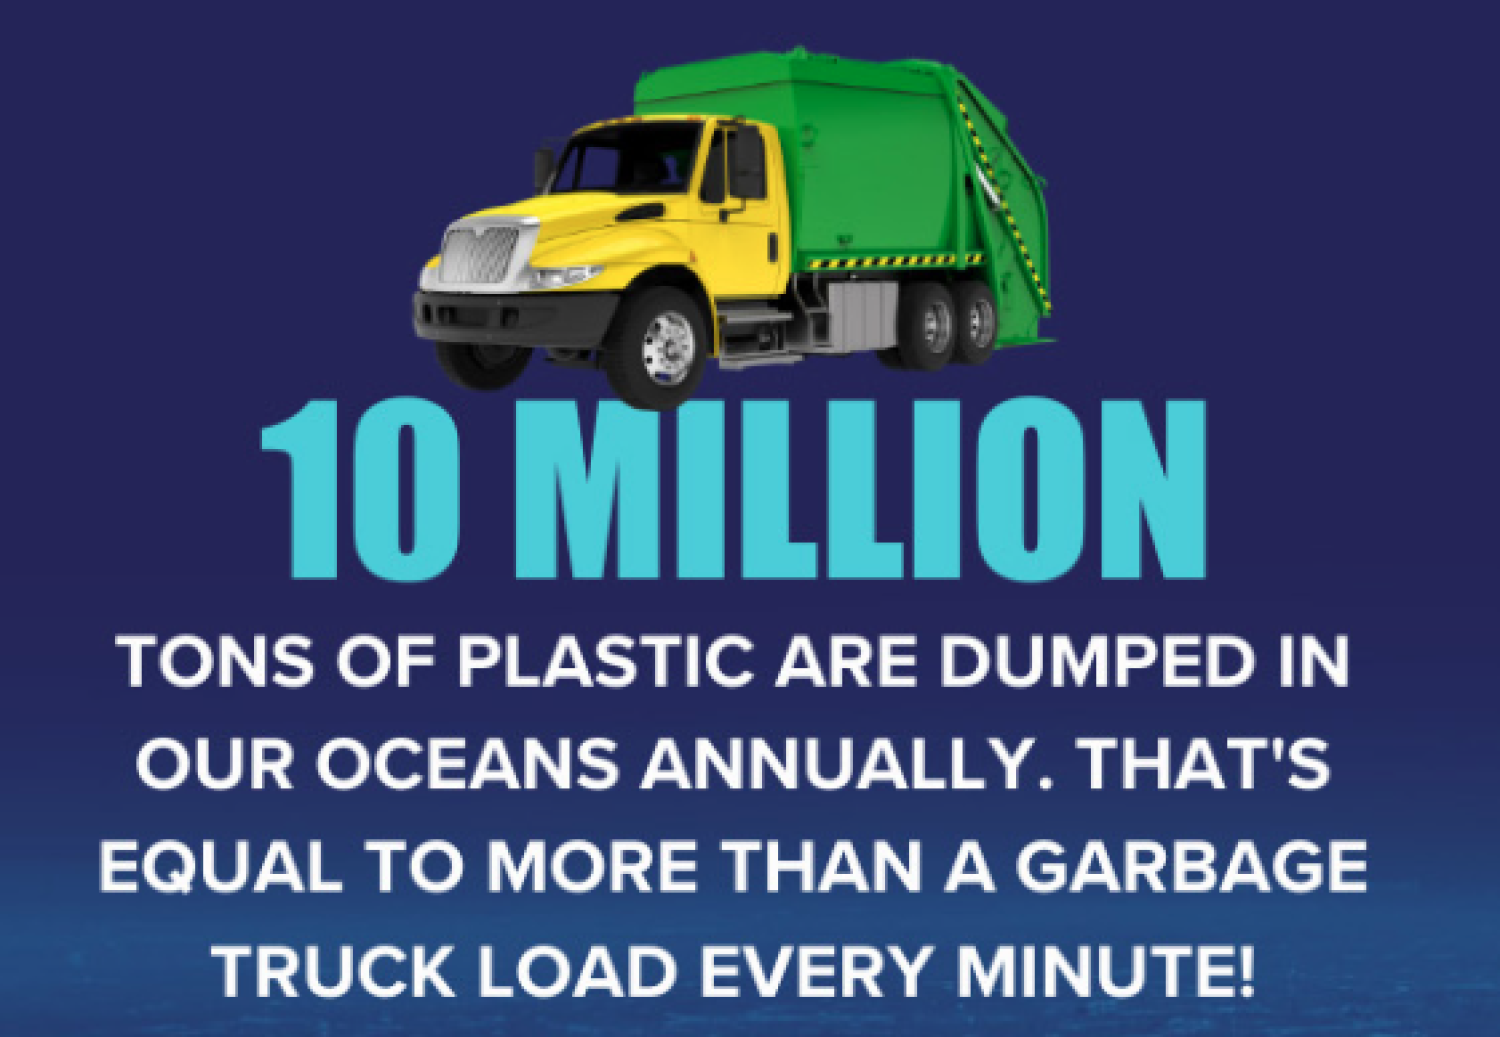 10 million tons of plastic dumped into the ocean annually